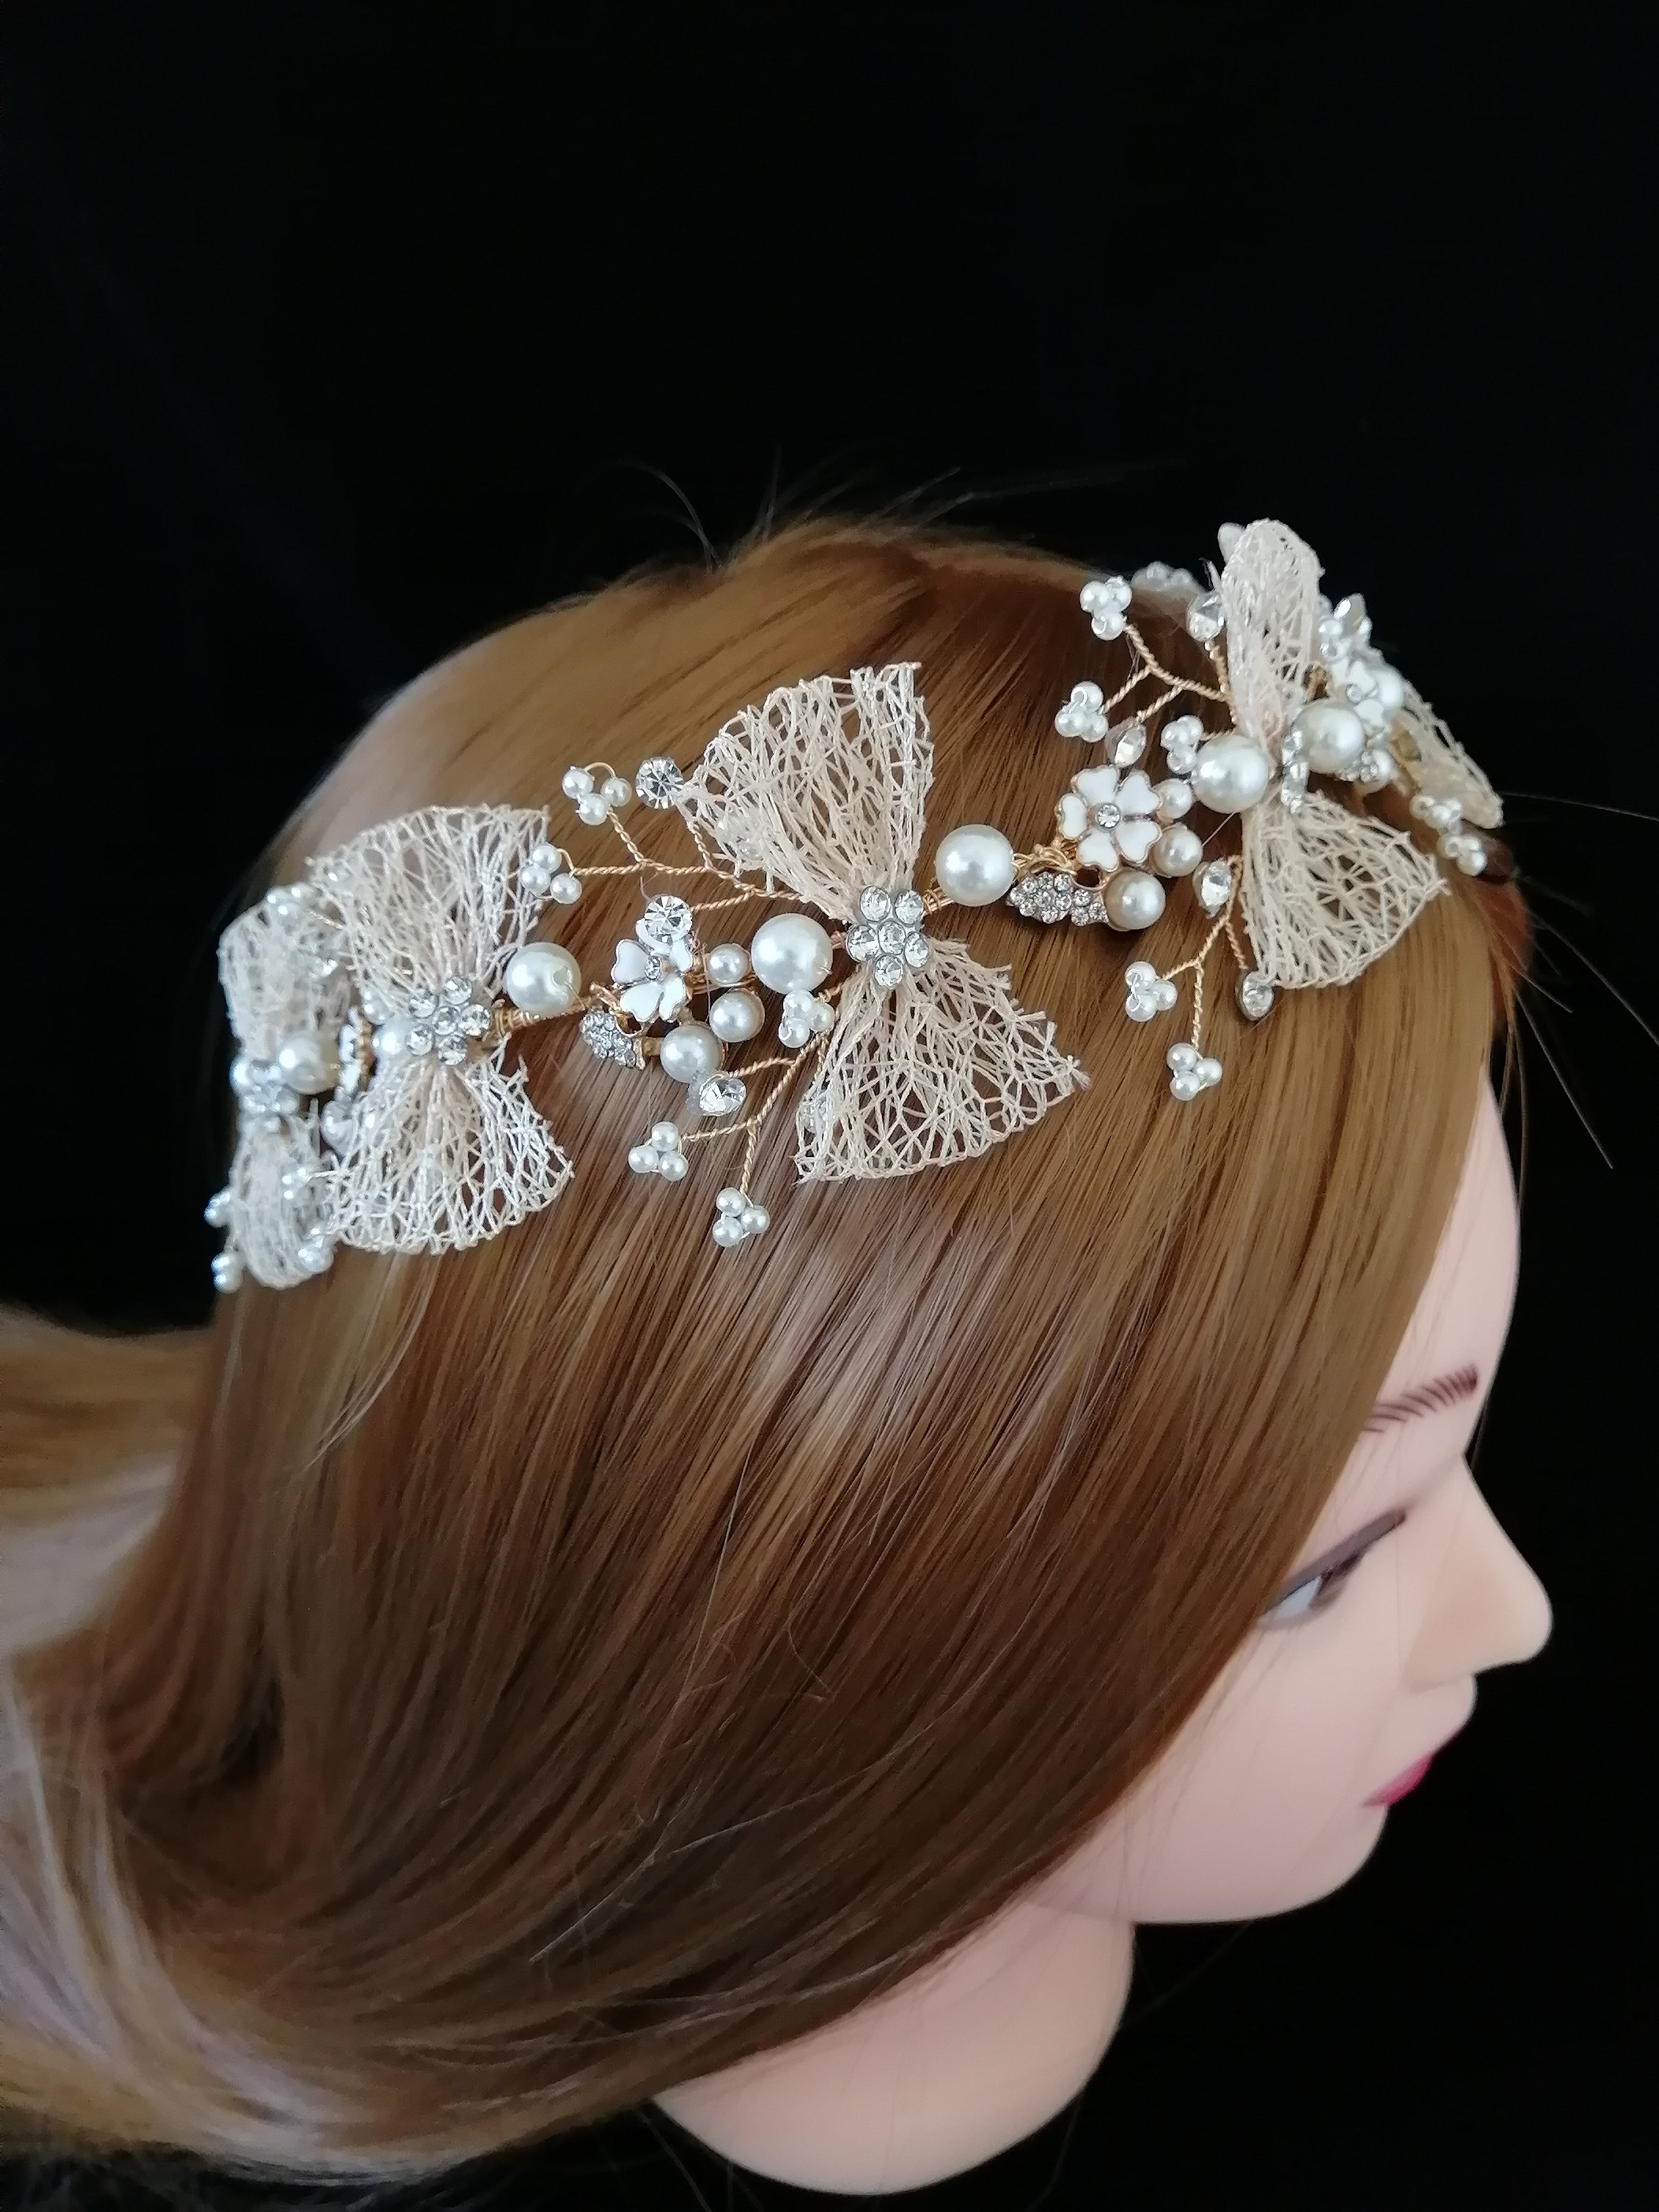 Superior Champagne Bow Bridal Tiaras Headbands Hairwear Chaplet Hairdressing  Jewelry Accessories,Luxury Korean Pearl Comb